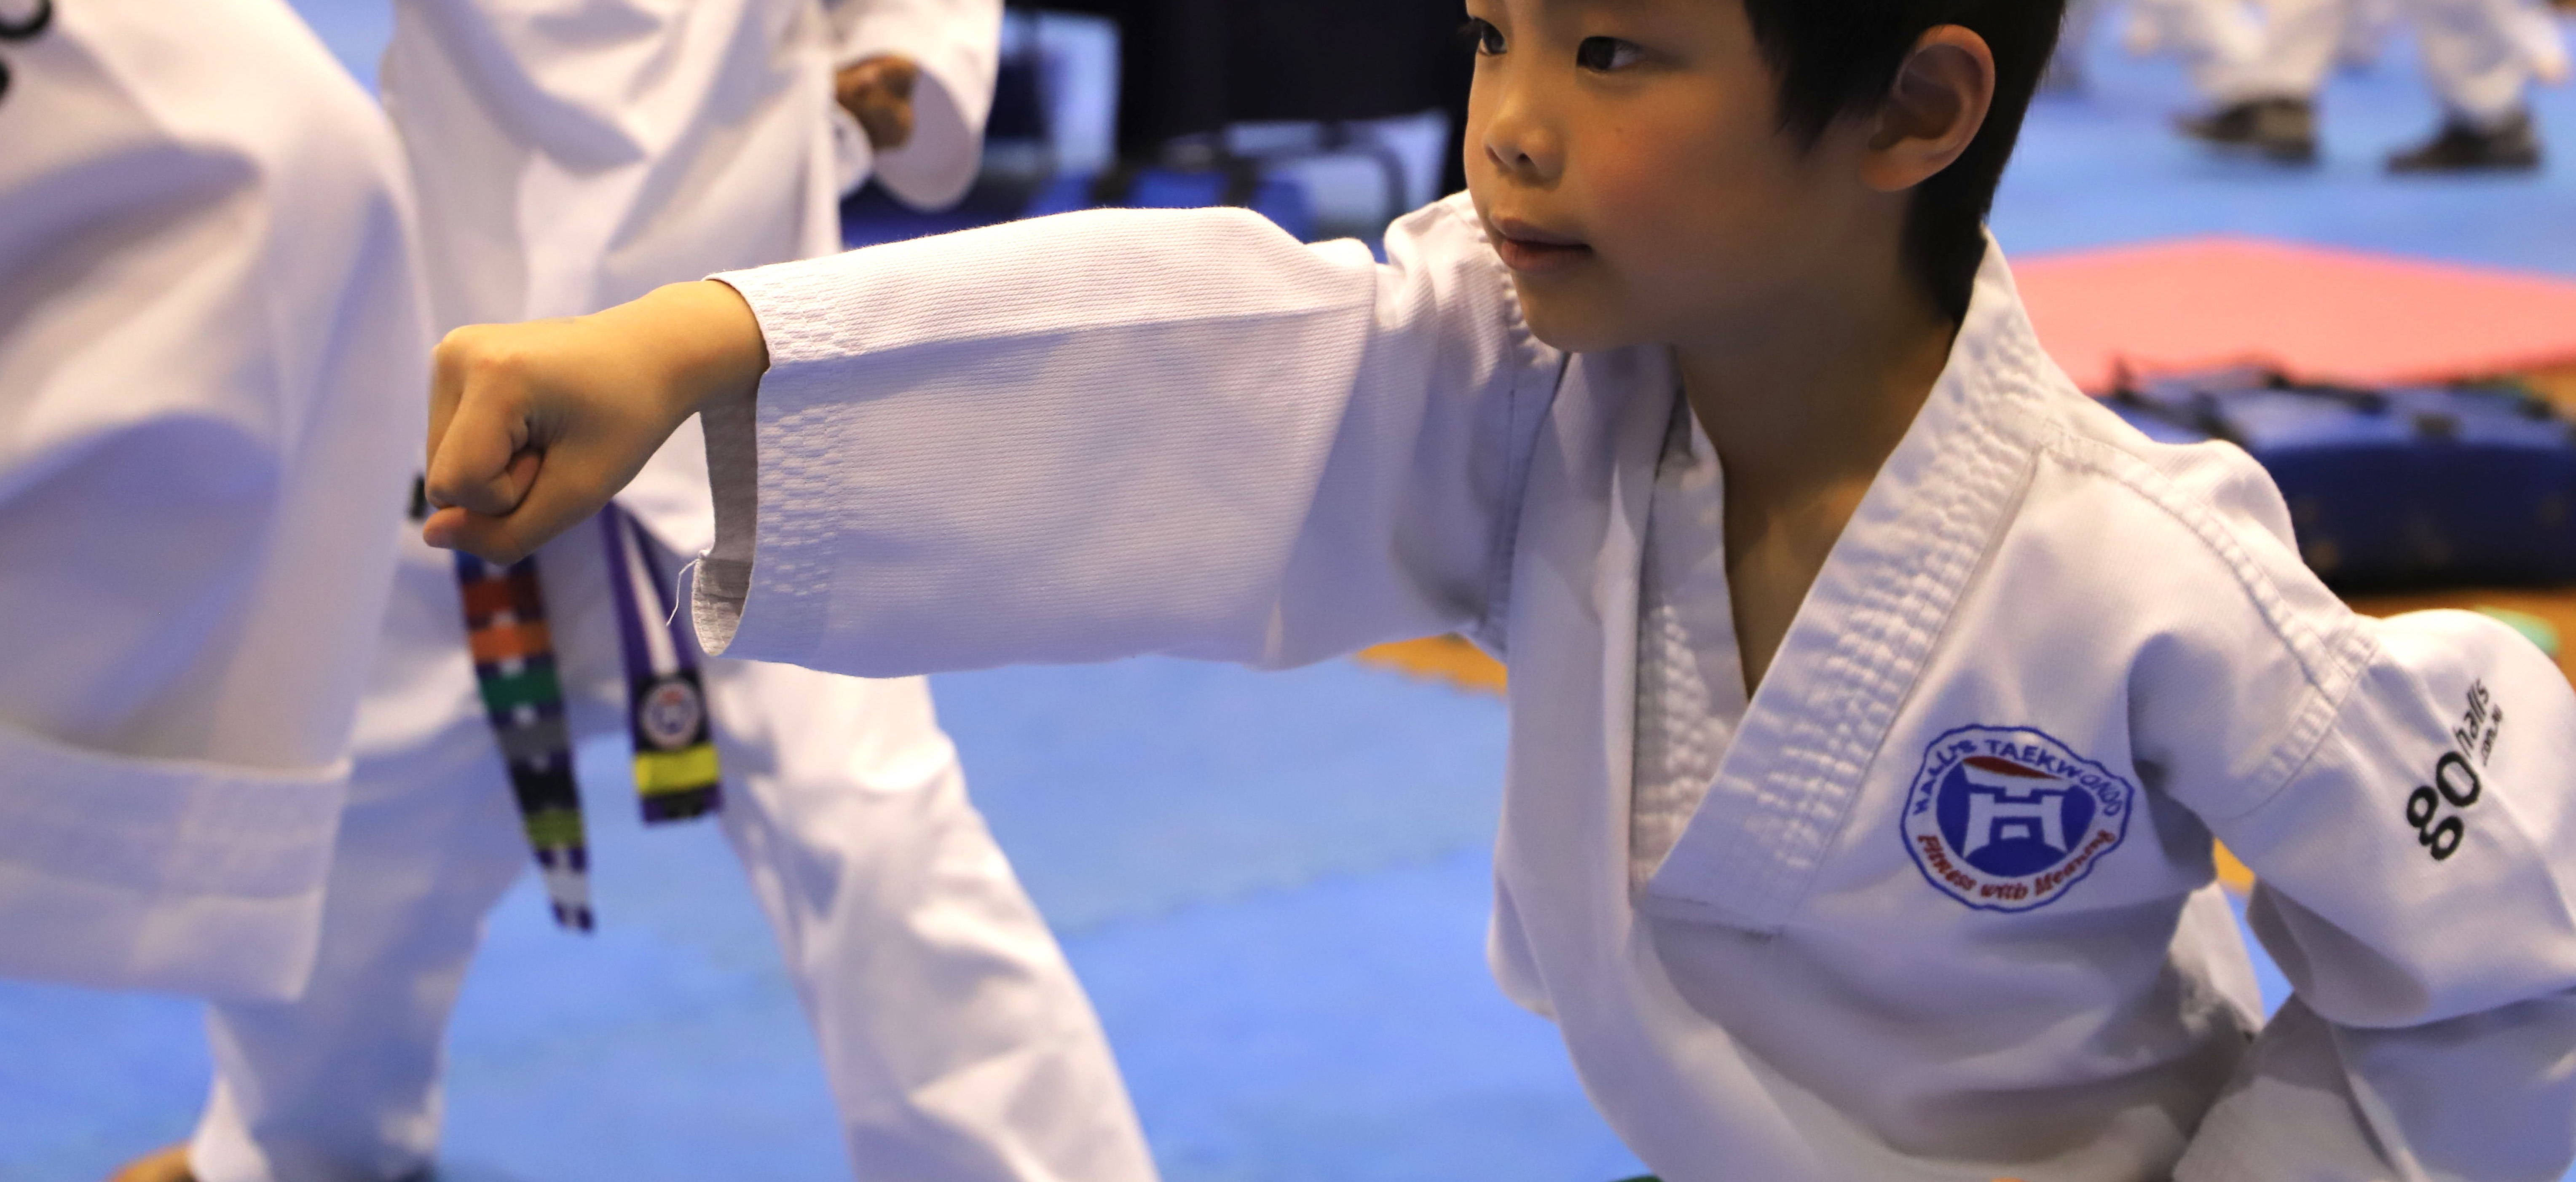 Halls Taekwondo Sept Gradings 2019 Action Little Ninjas 39 Copy